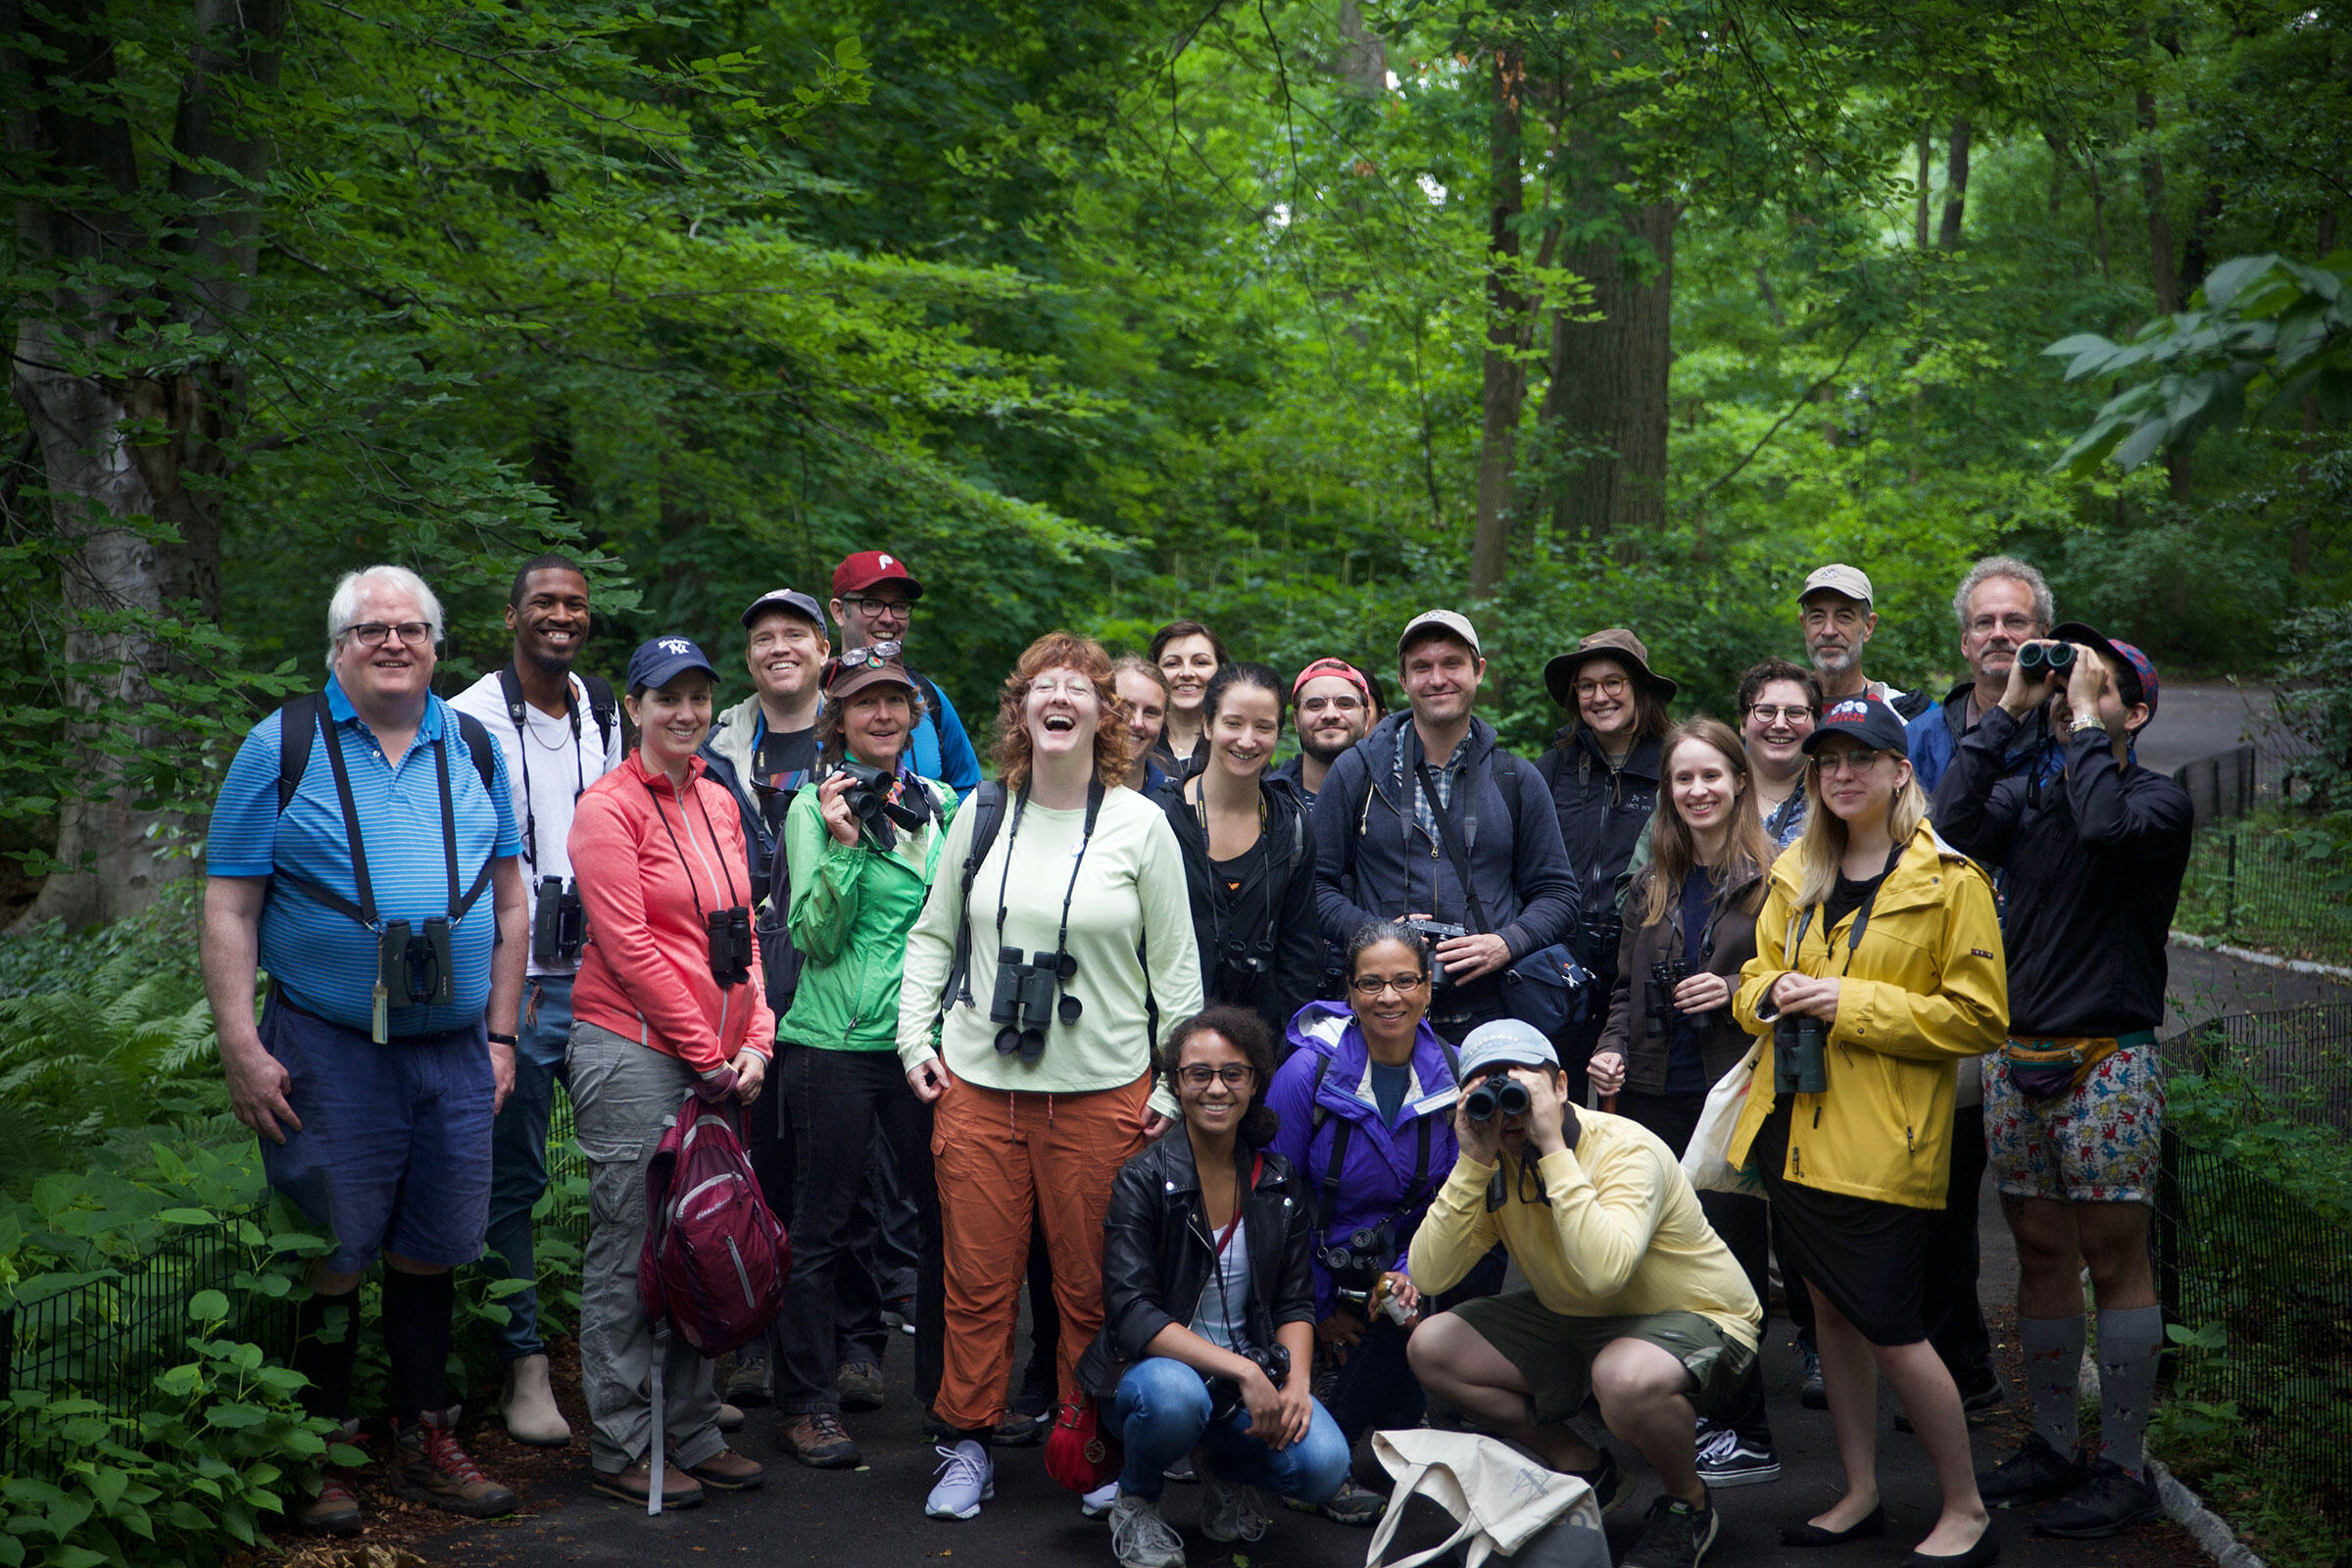 The Let's Go Birding Together NYC crew. The walk was coordinated by National Audubon and New York City Audubon, and co-led by Martha Harbison, Andrew Maas, Andrew Rubenfeld, and Purbita Saha. Eileen Solange Rodriguez/Audubon